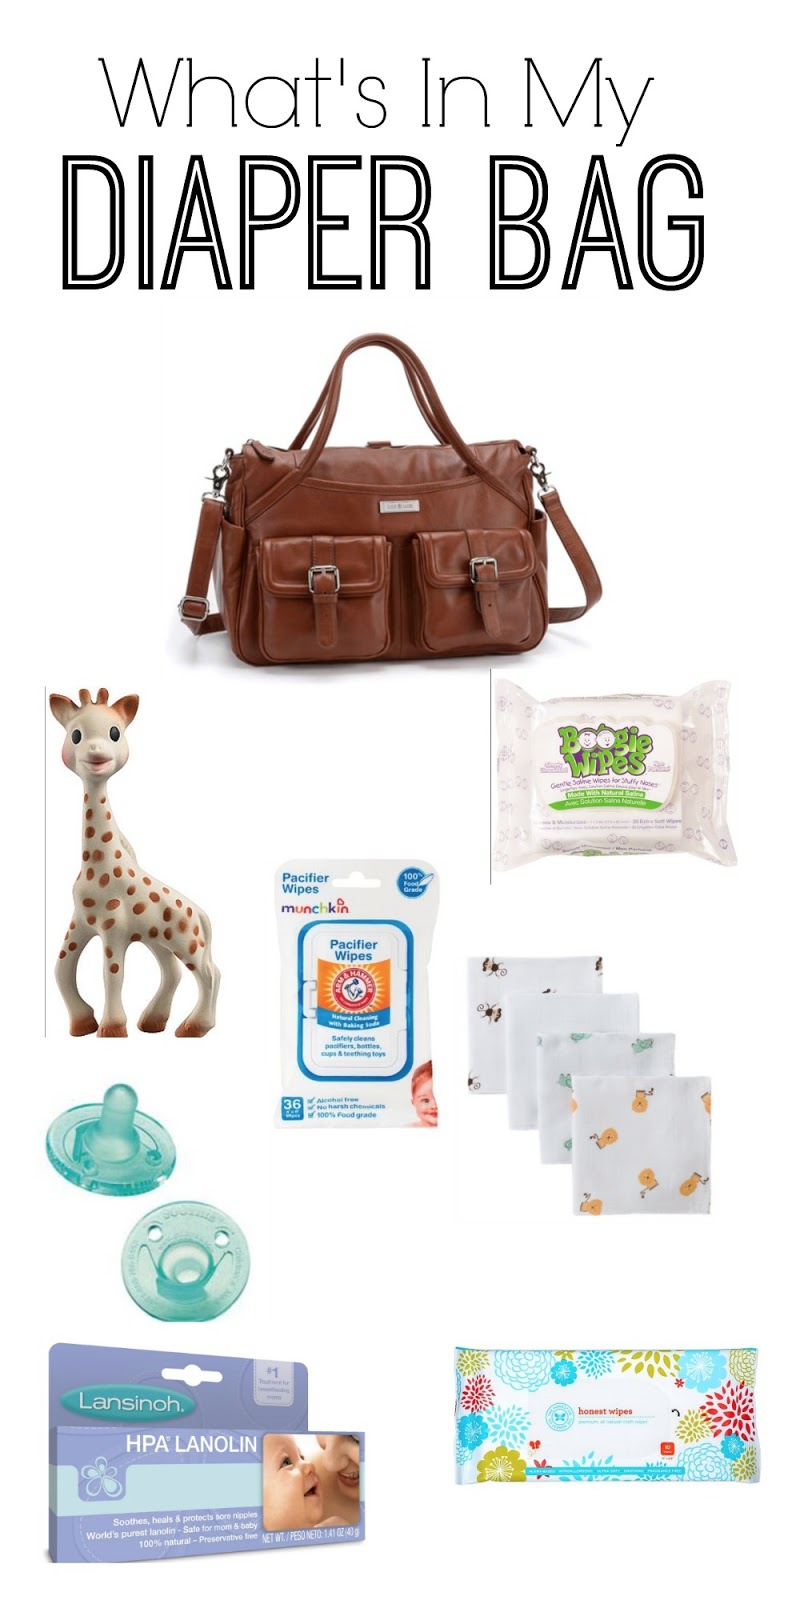 Rose & Co Blog: What's in my Diaper Bag